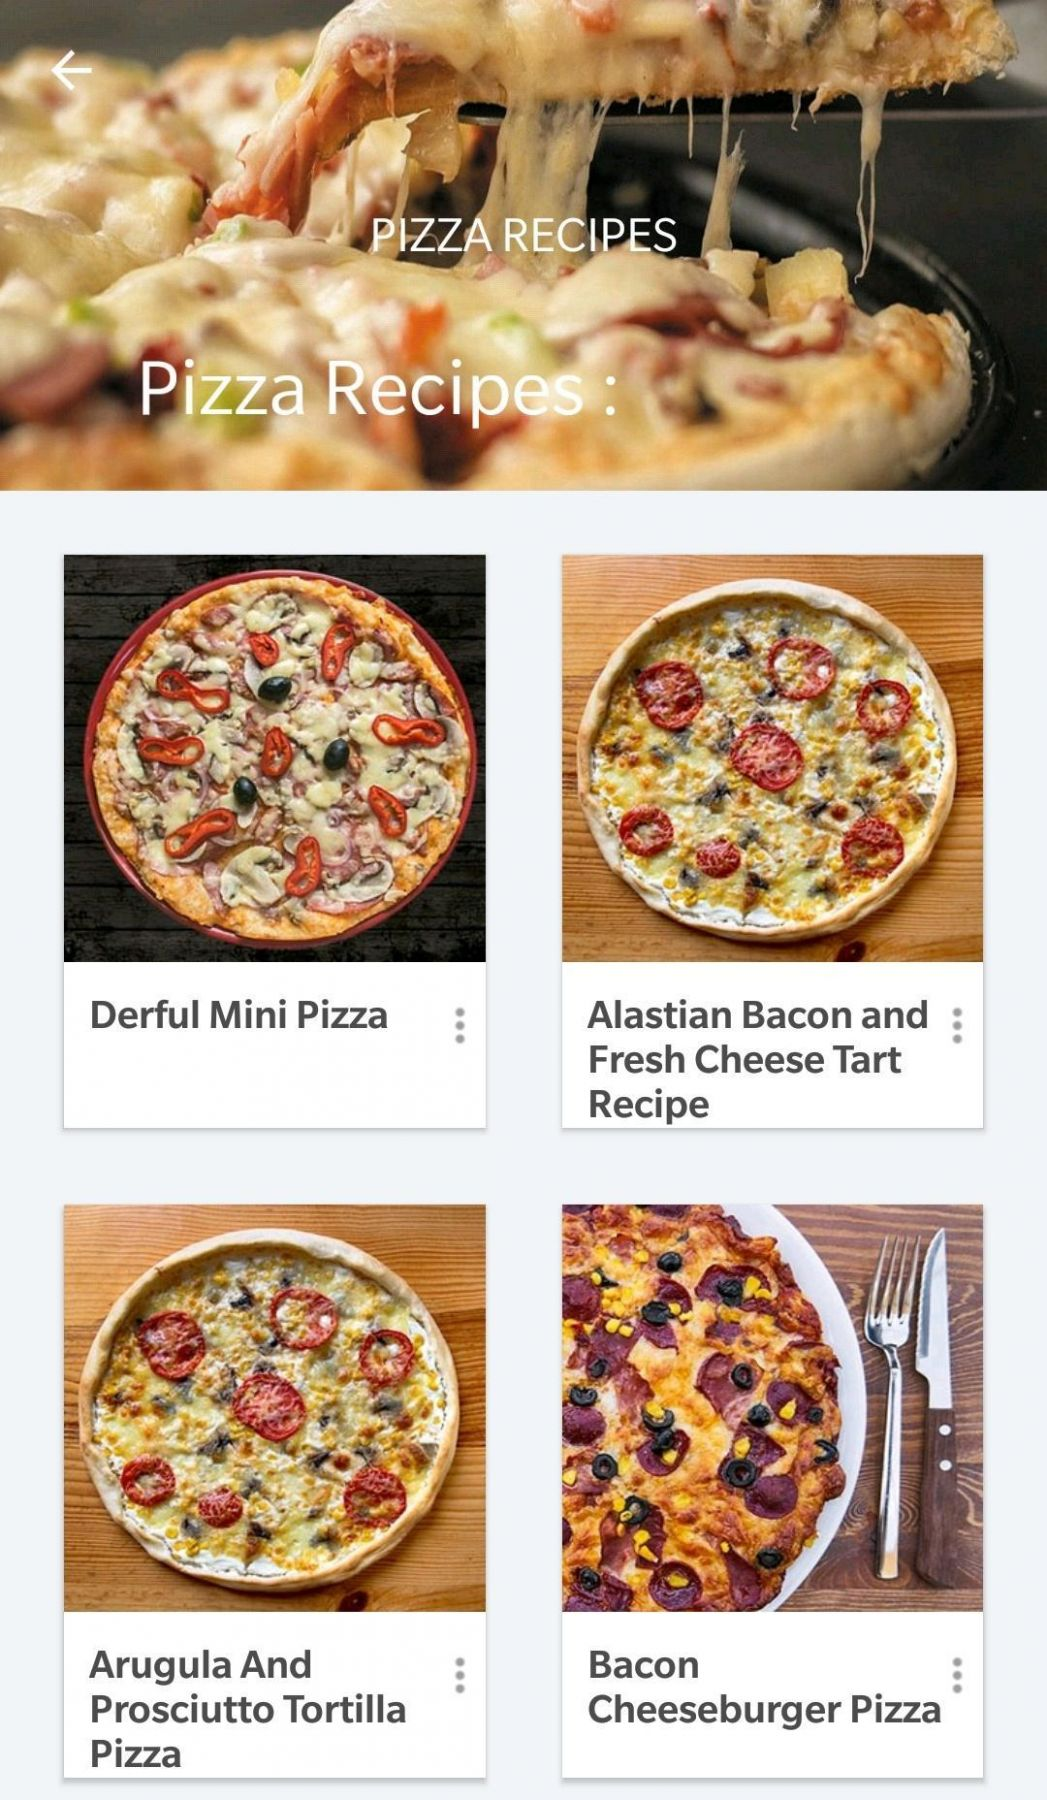 Pizza Recipes Offline for Android - APK Download - Pizza Recipes Download